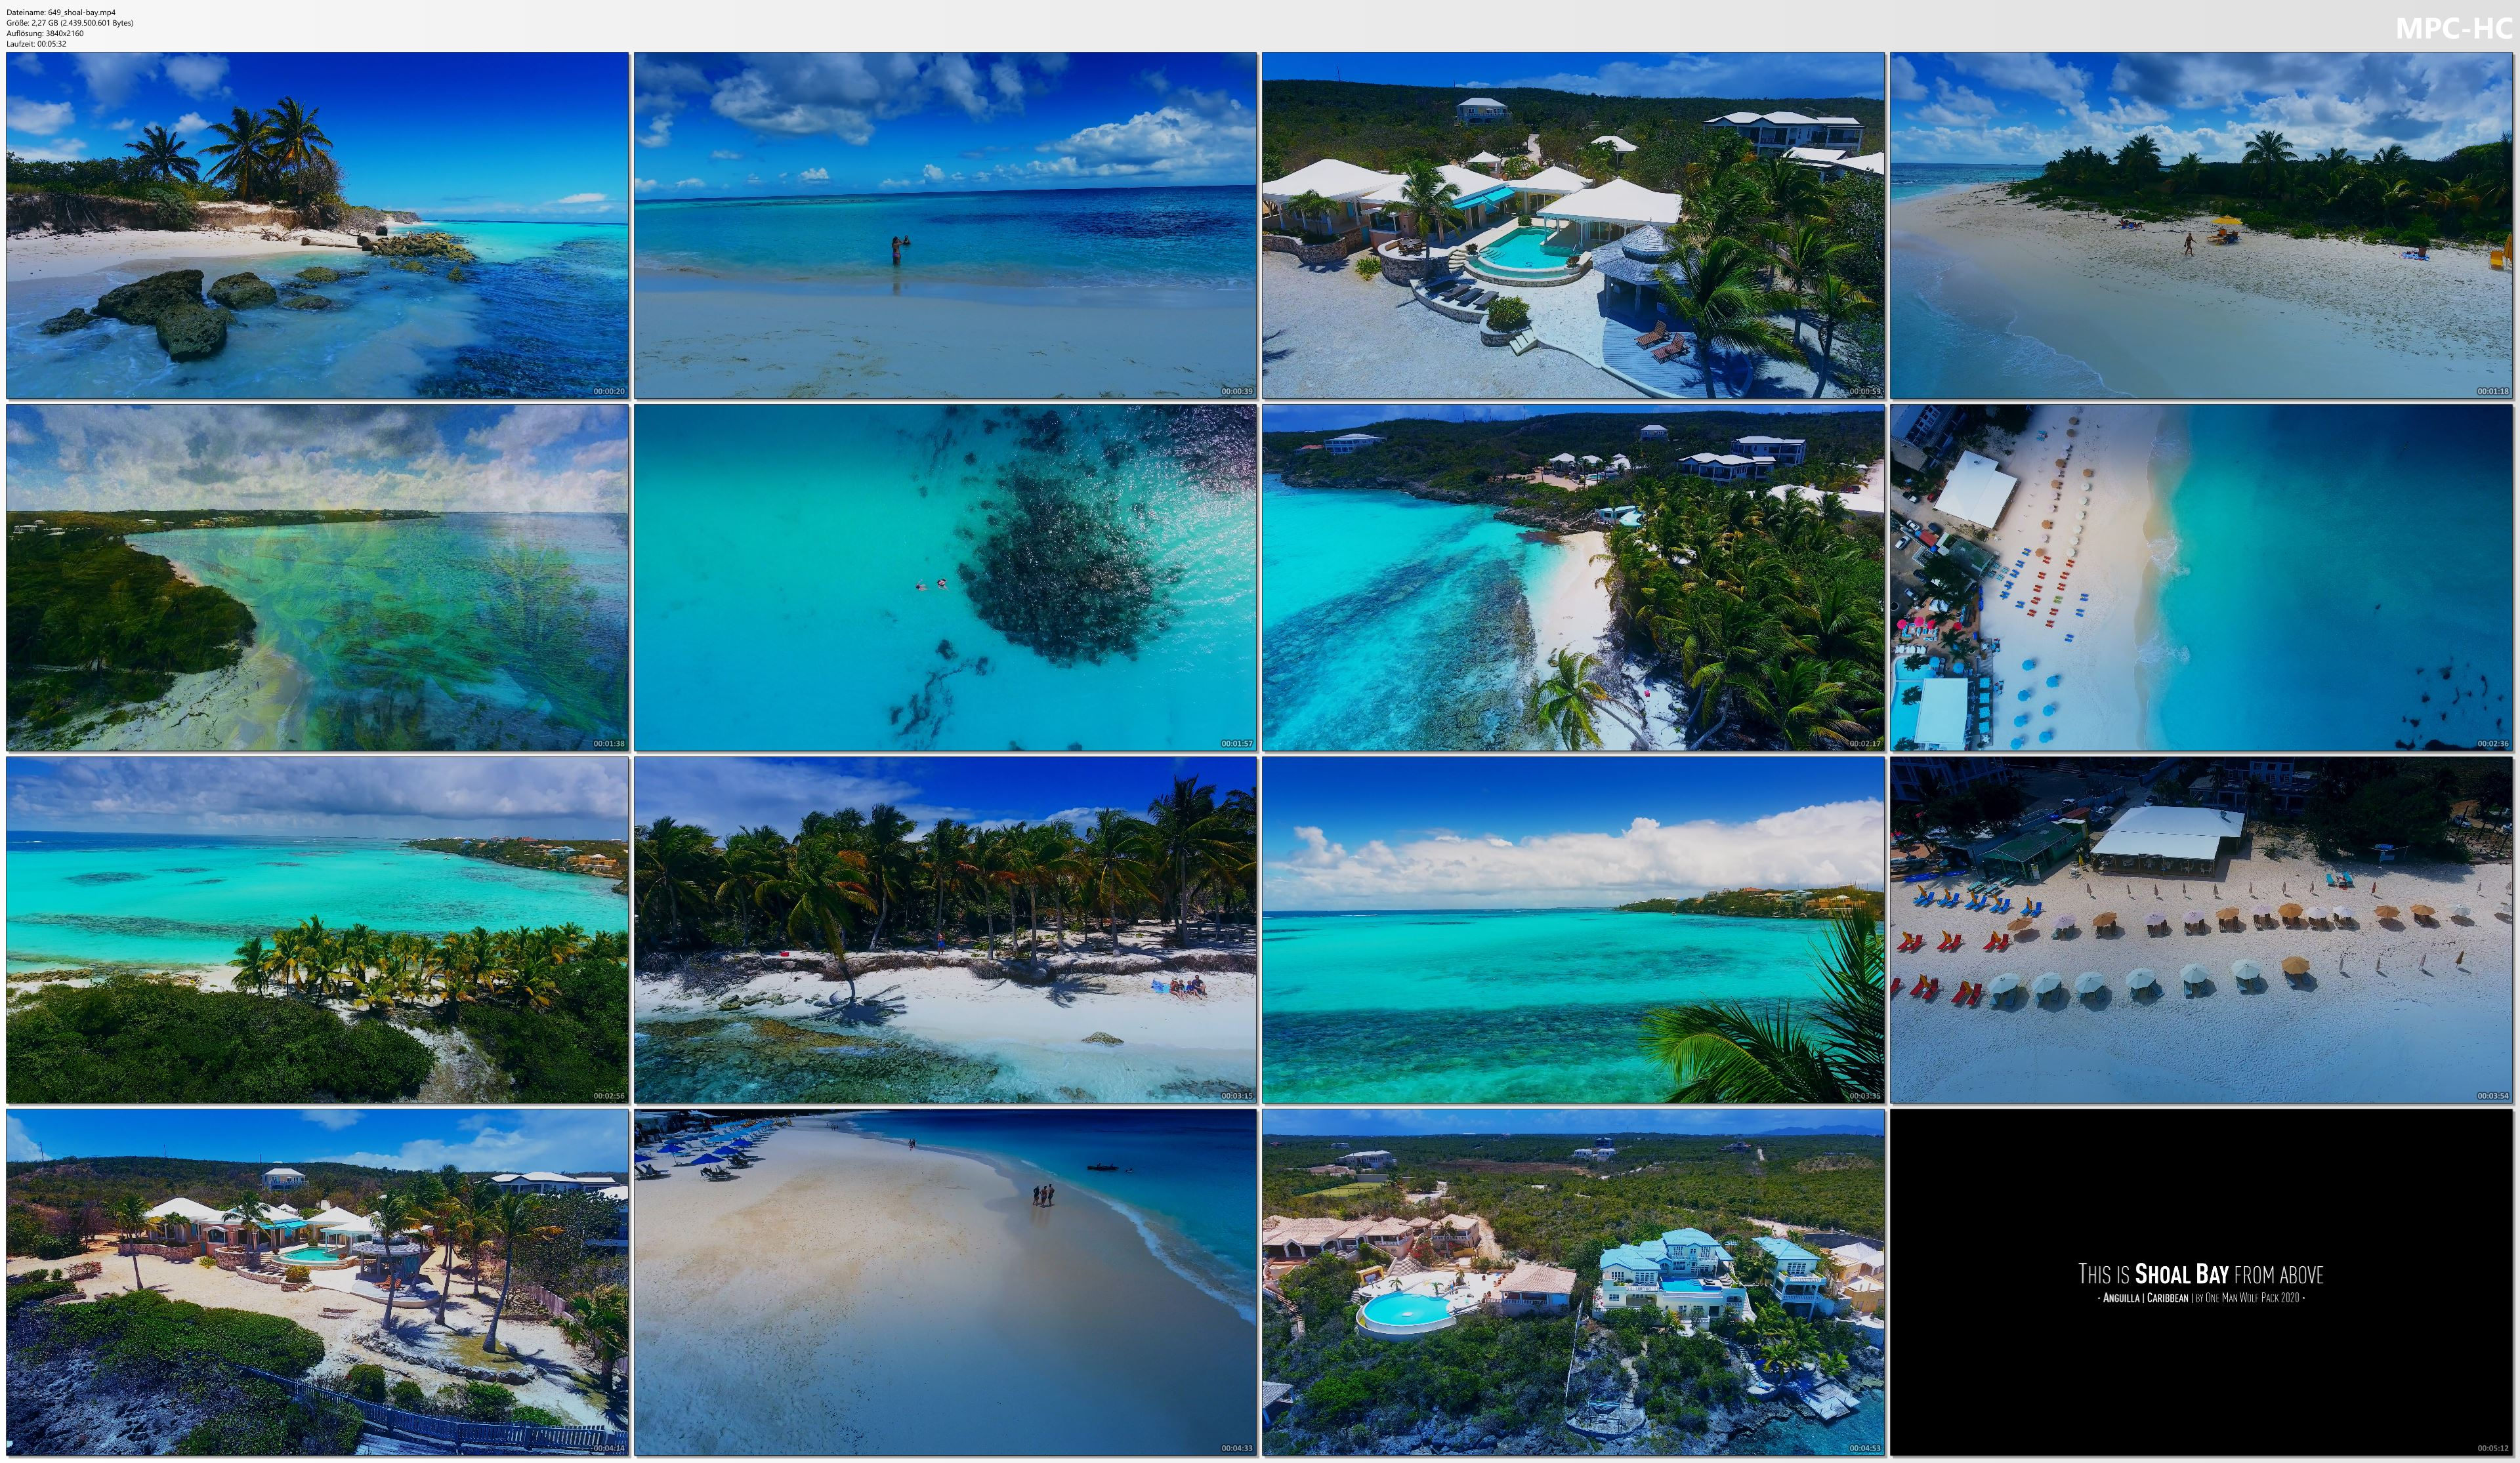 Drone Pictures from Video 【4K】Shoal Bay from Above - WORLDs MOST BEAUTIFUL BEACH?